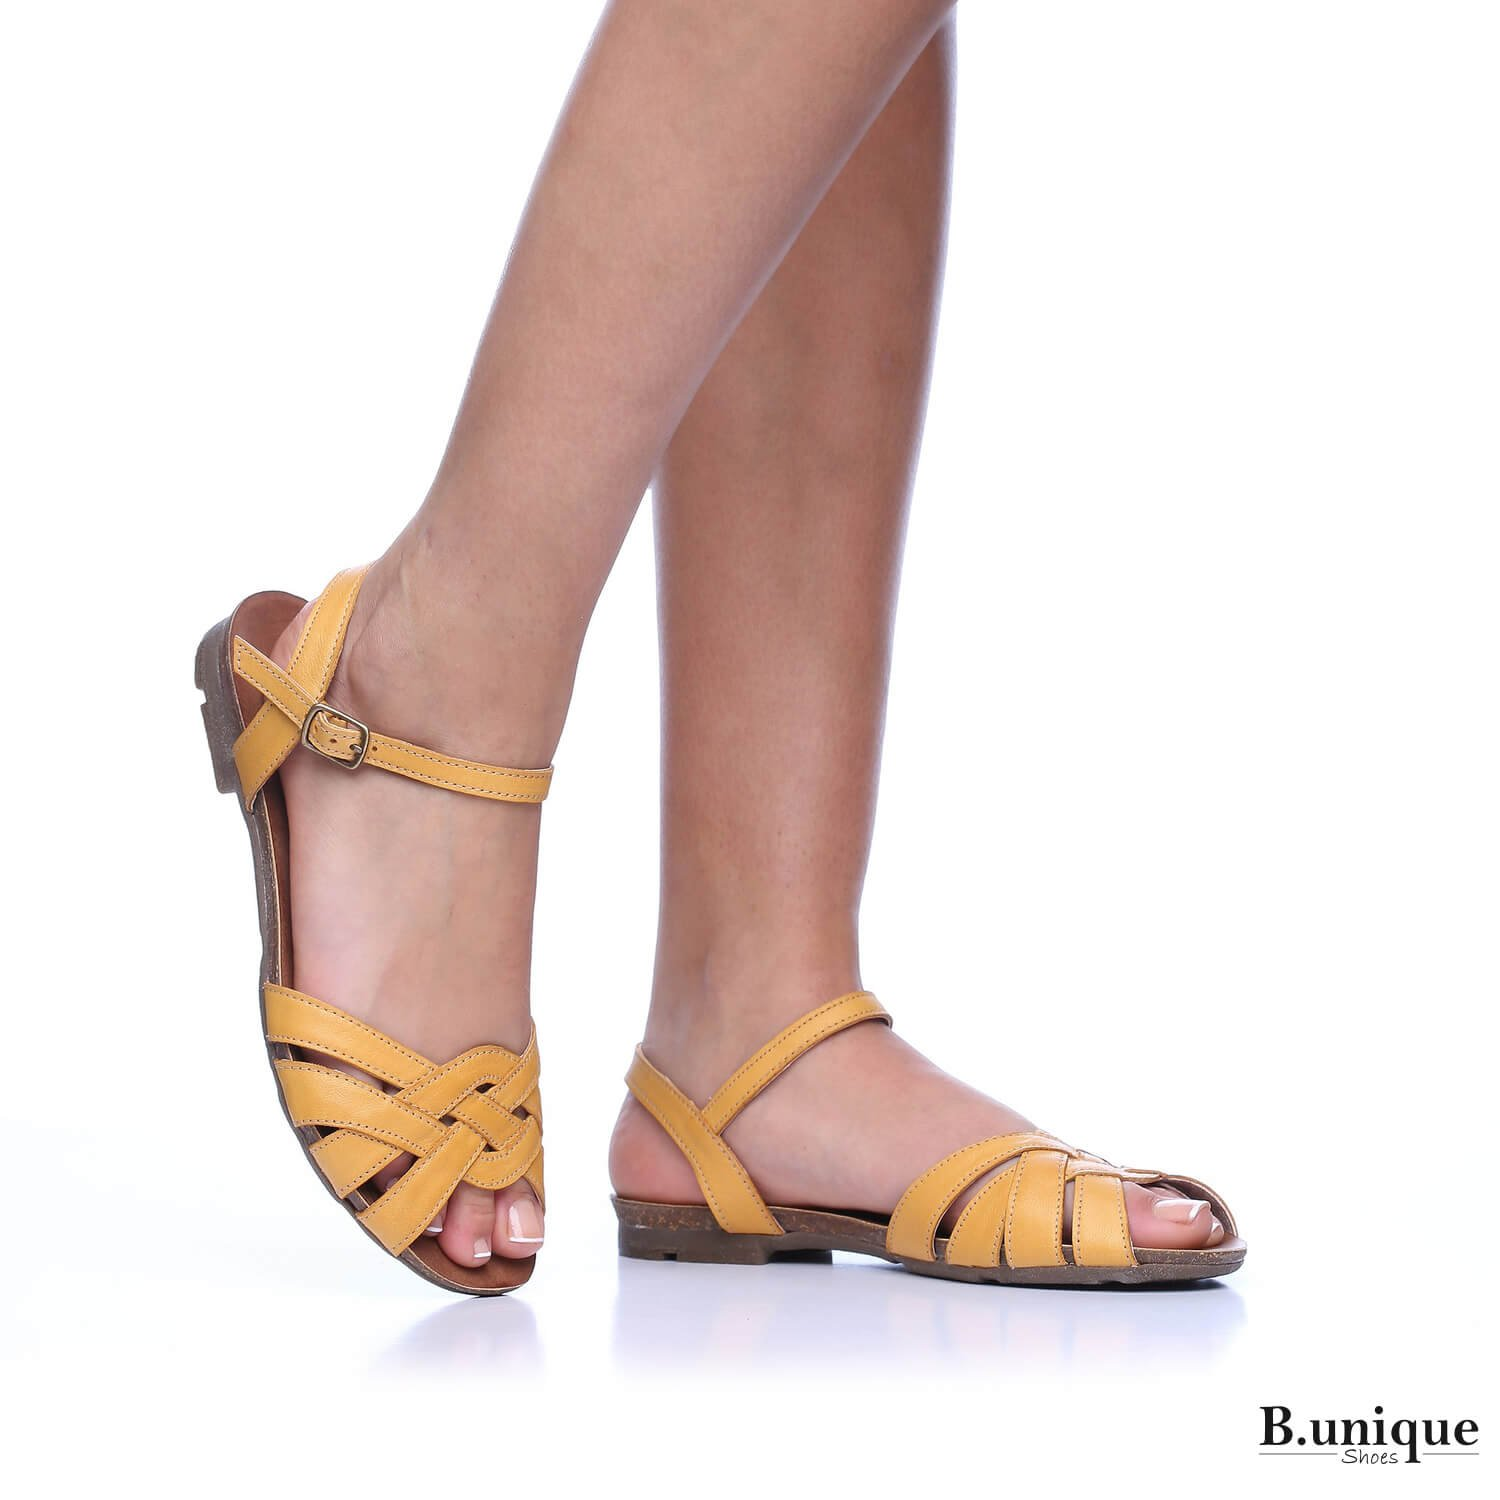 B-Unique Venice Flat Sandals Women, Woven Leather Sandal Ankle Strap